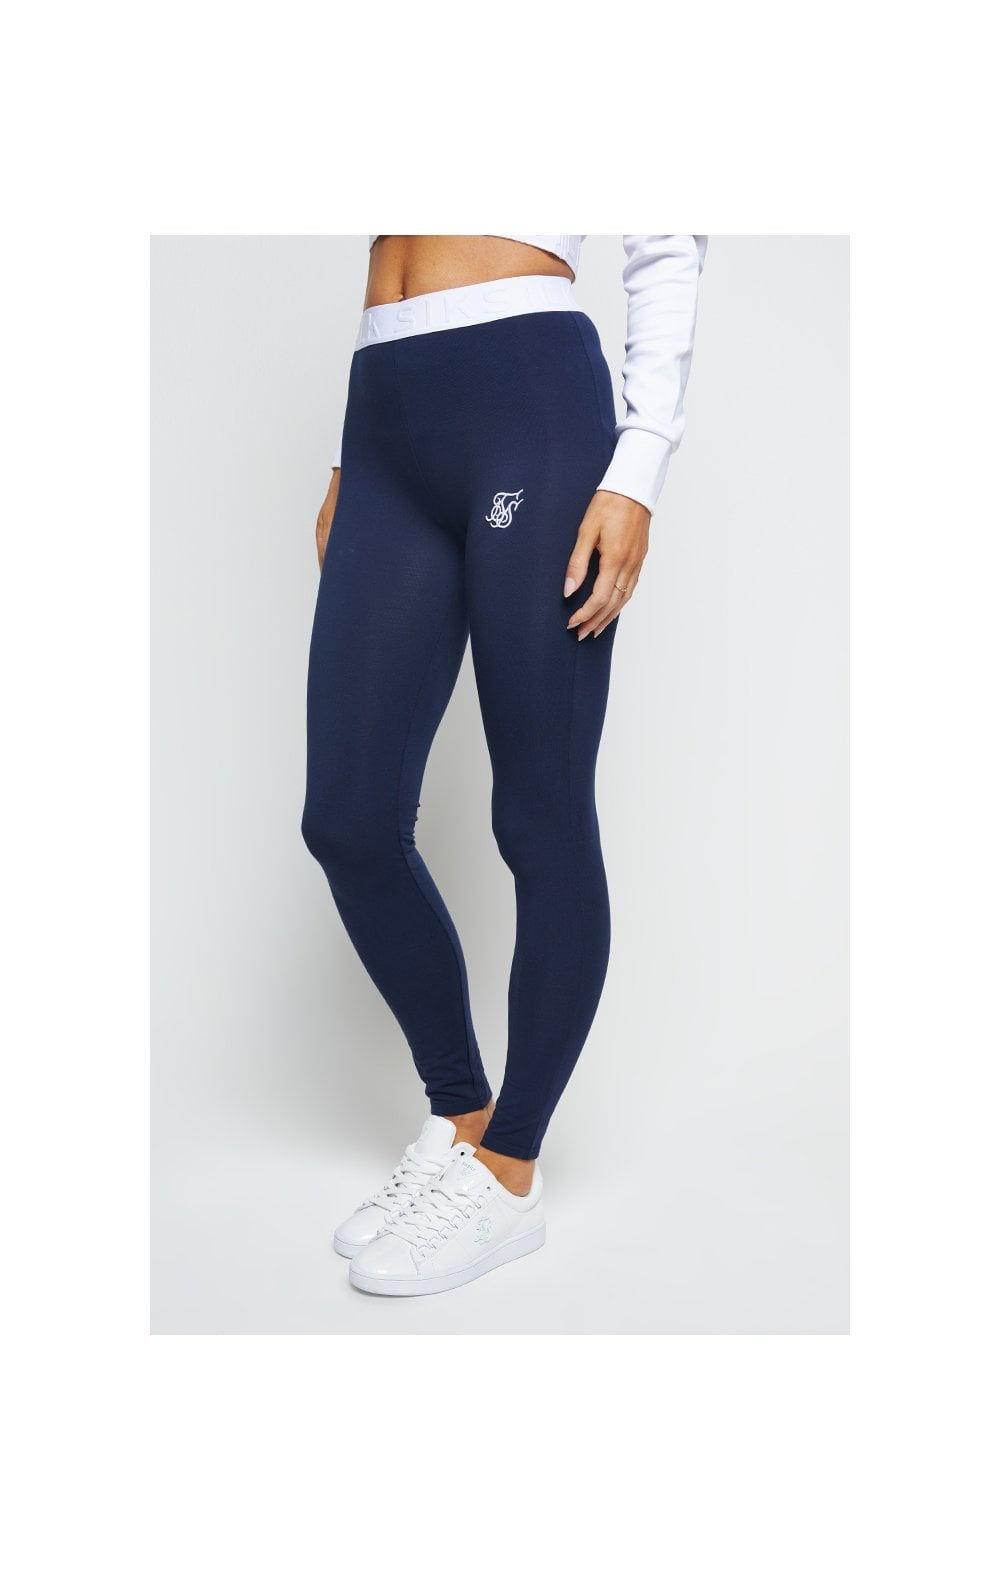 SikSilk Tape Waist Leggings - Navy